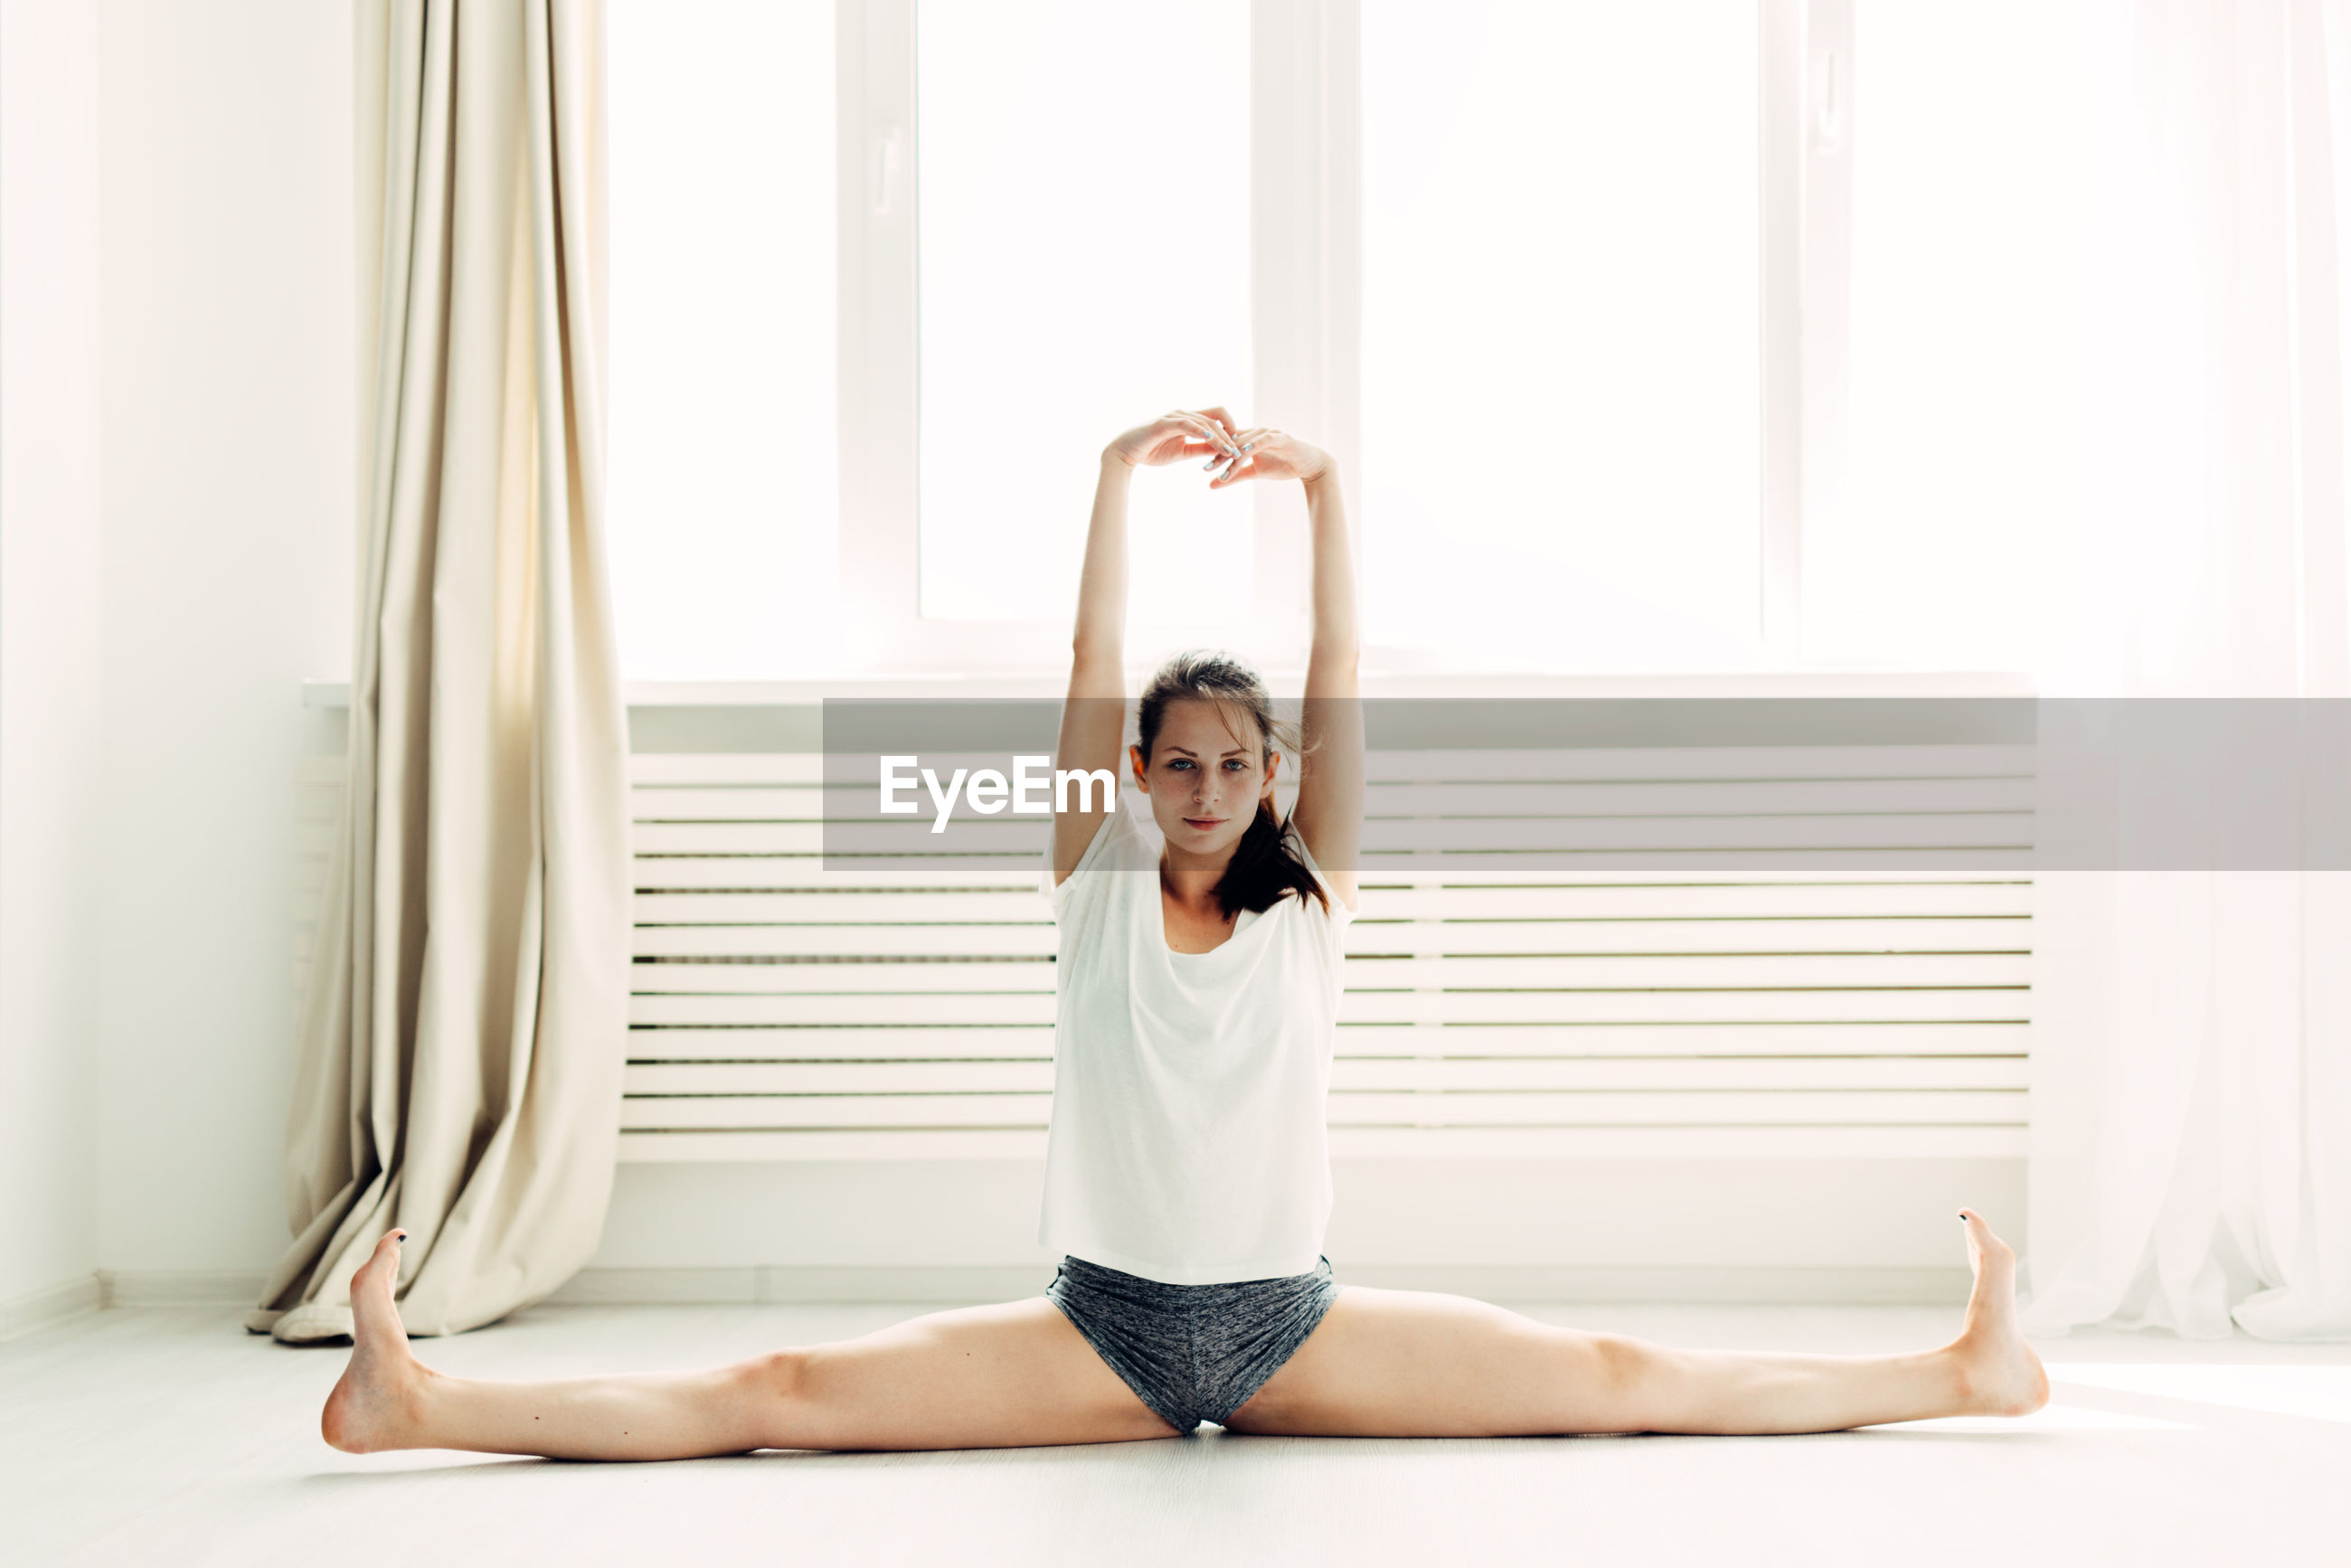 Full length portrait of young woman doing the splits while practicing yoga at home